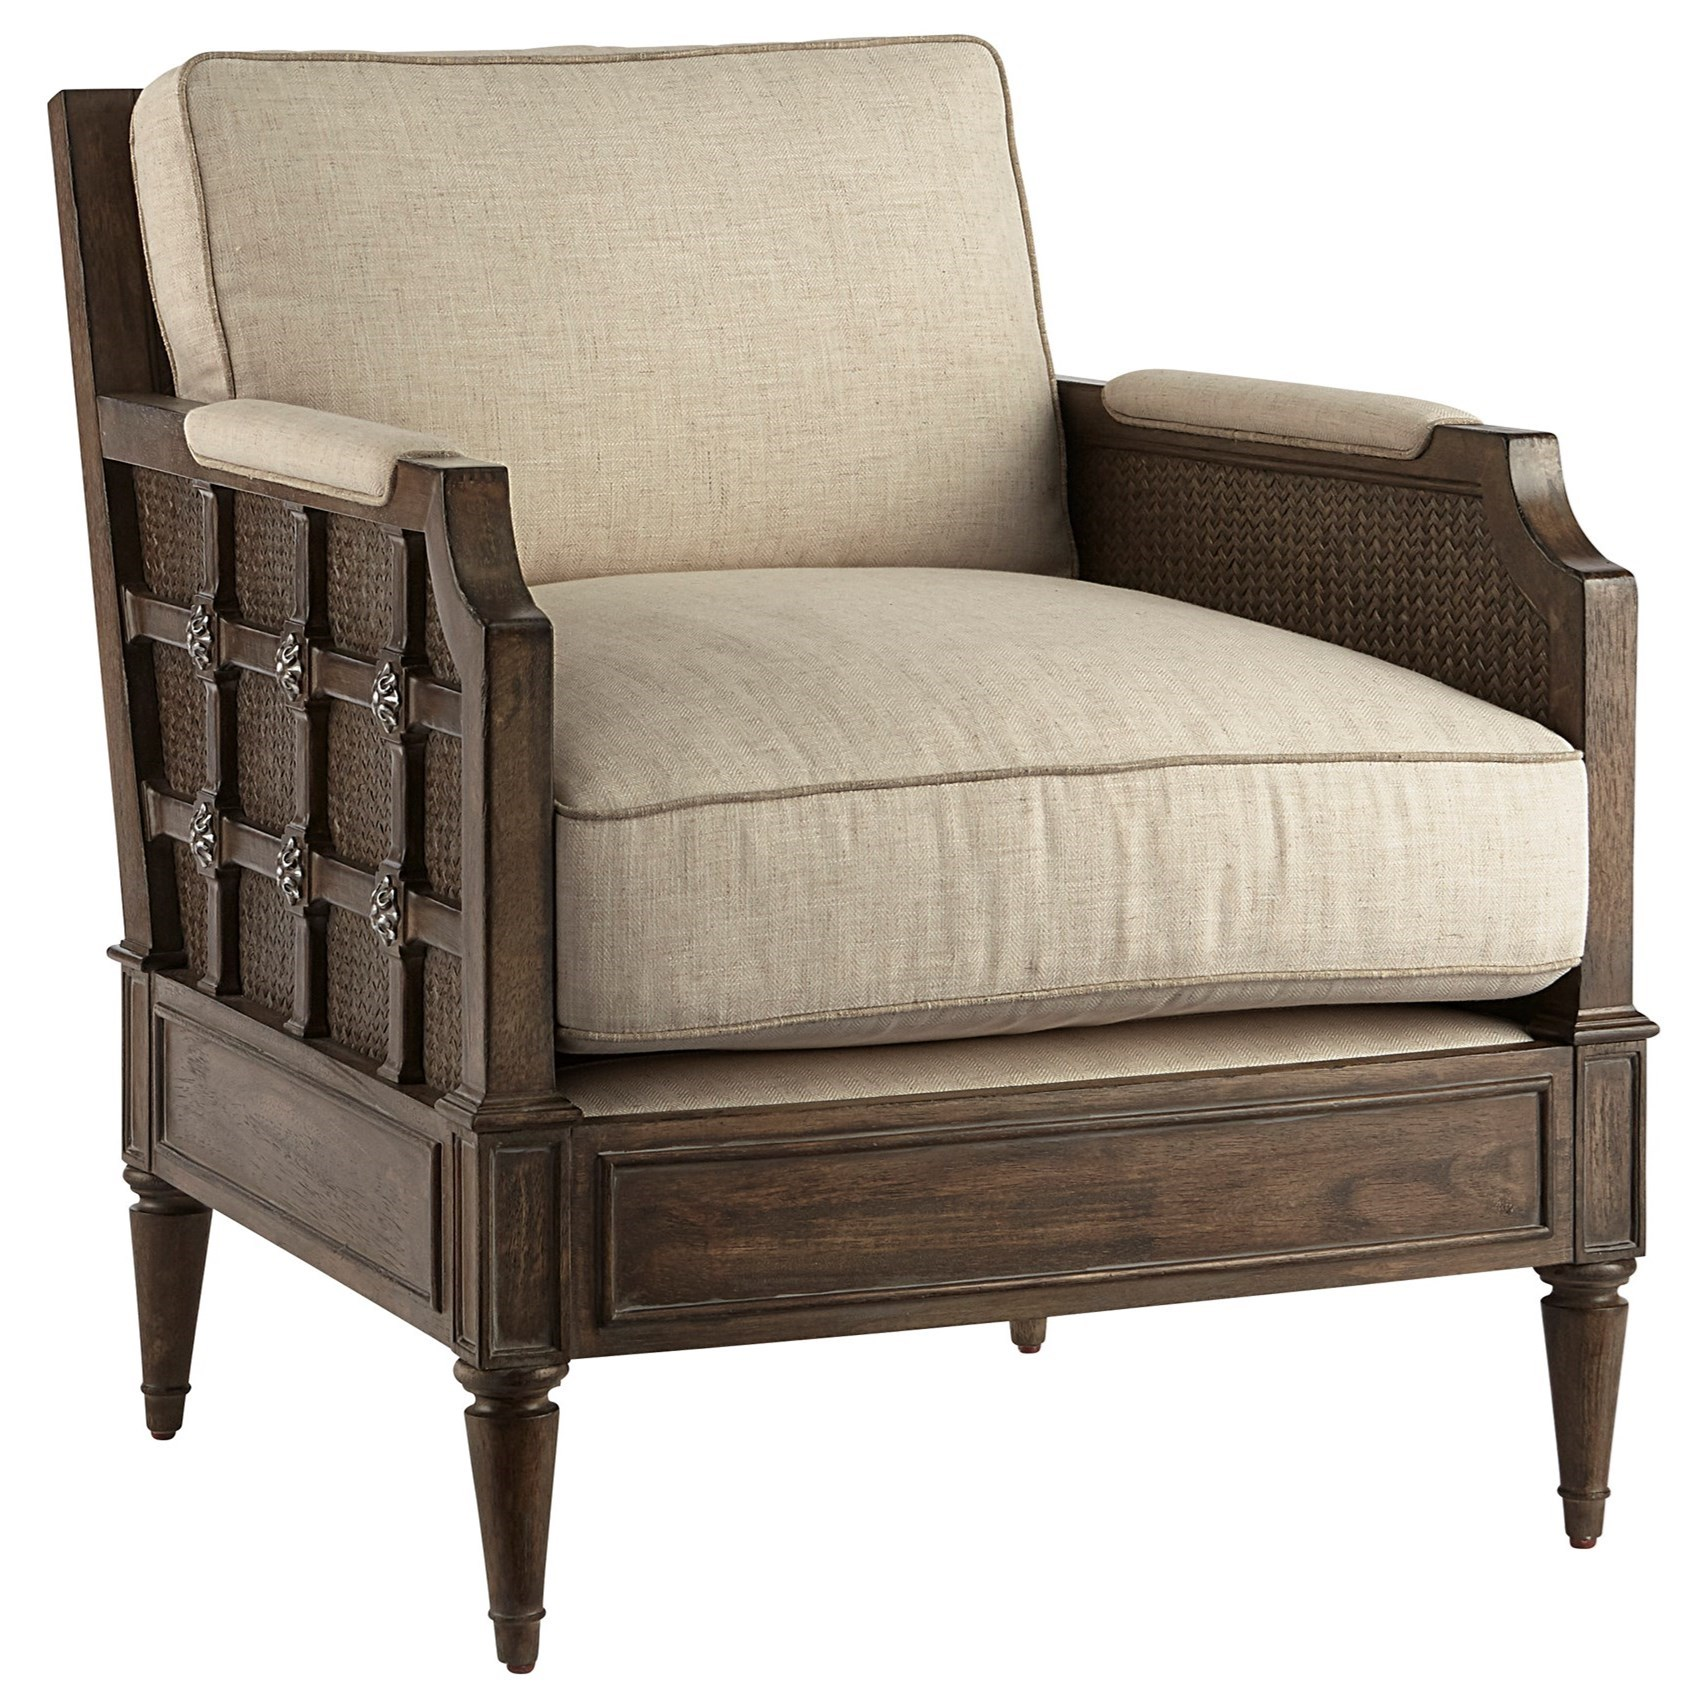 Vintage Salvage Upholstery Accent Chair by A.R.T. Furniture Inc at Home Collections Furniture